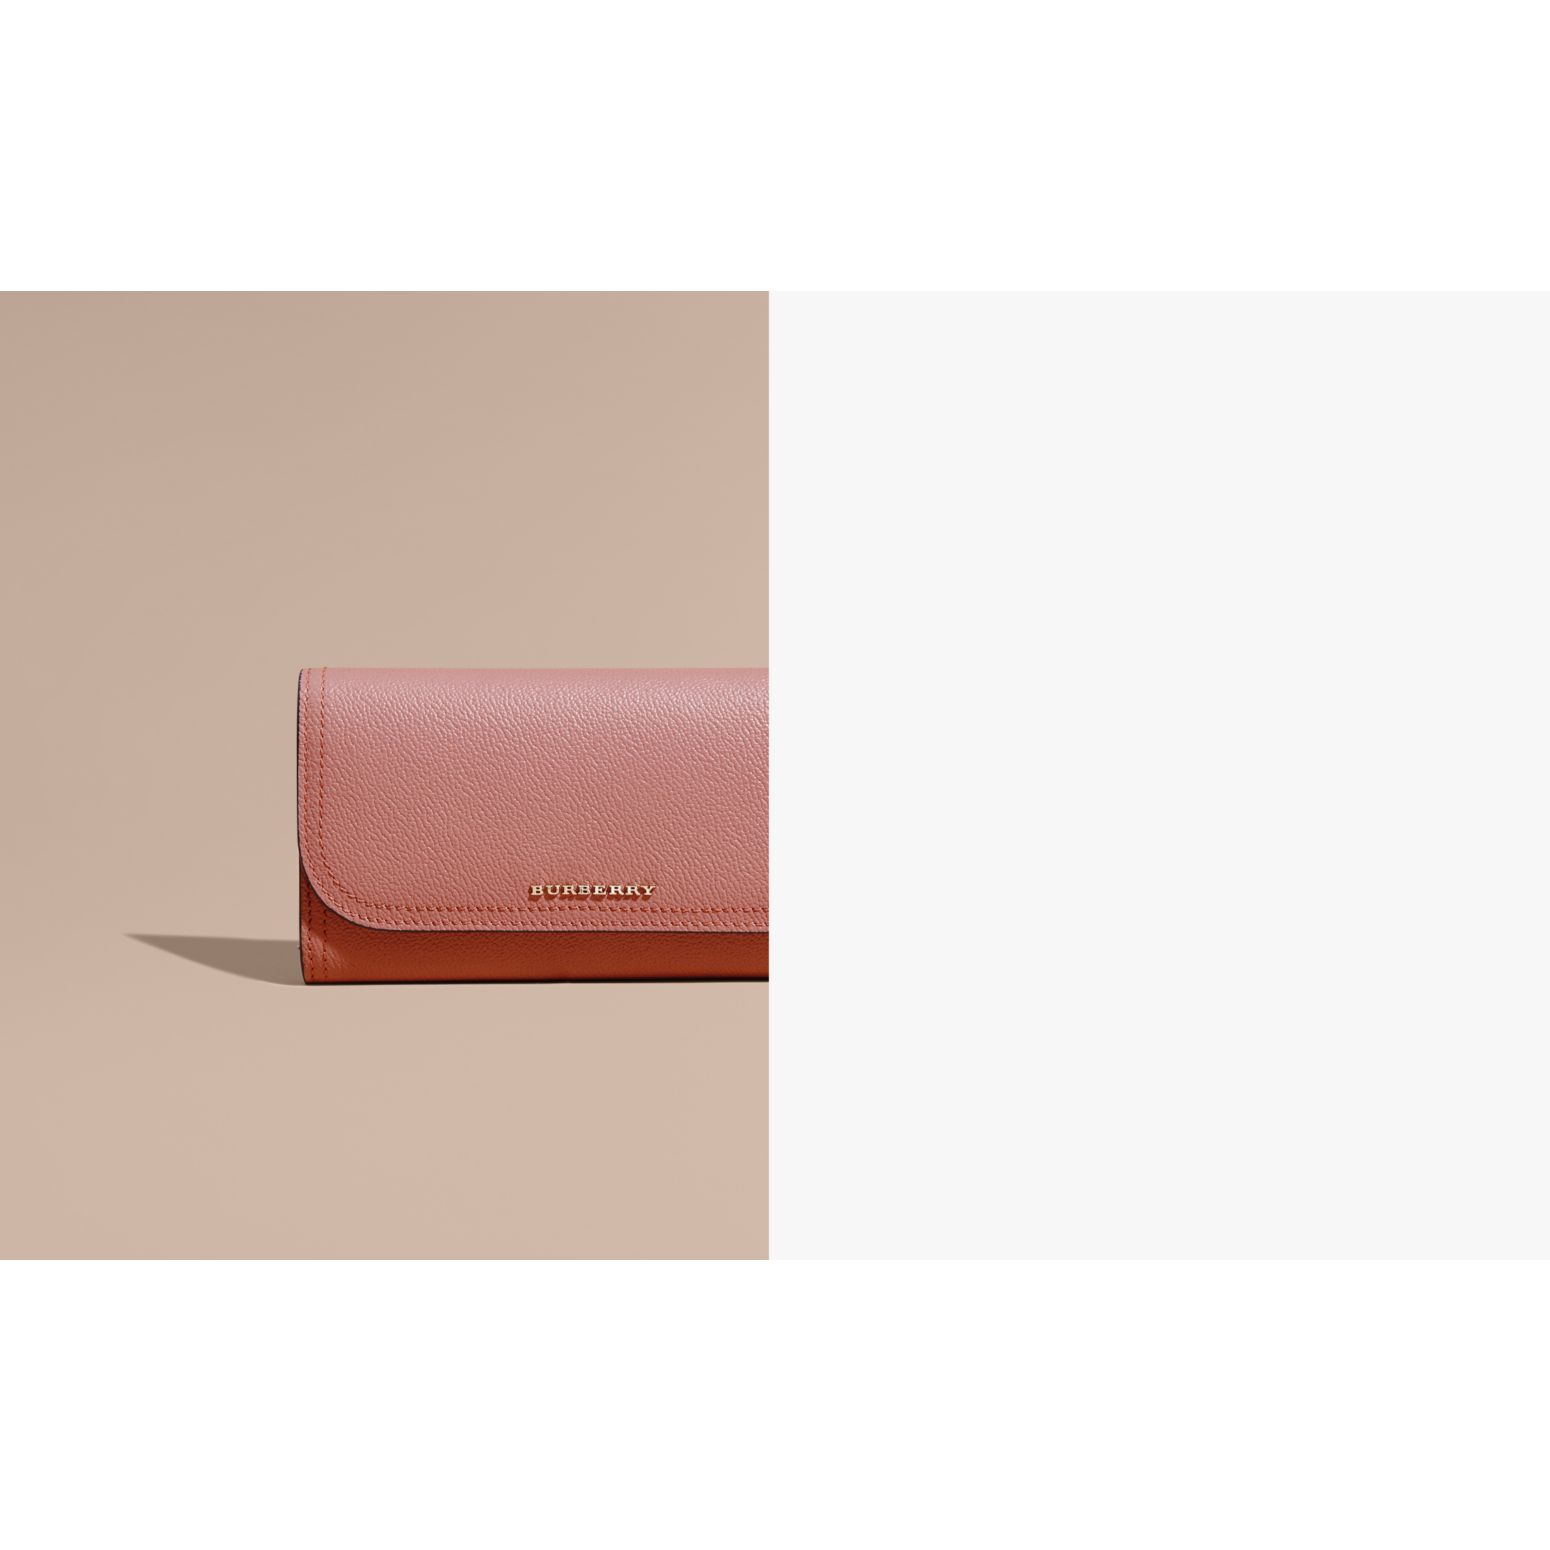 Grainy Leather Slim Continental Wallet in Dusty Pink - Women | Burberry Australia - gallery image 1